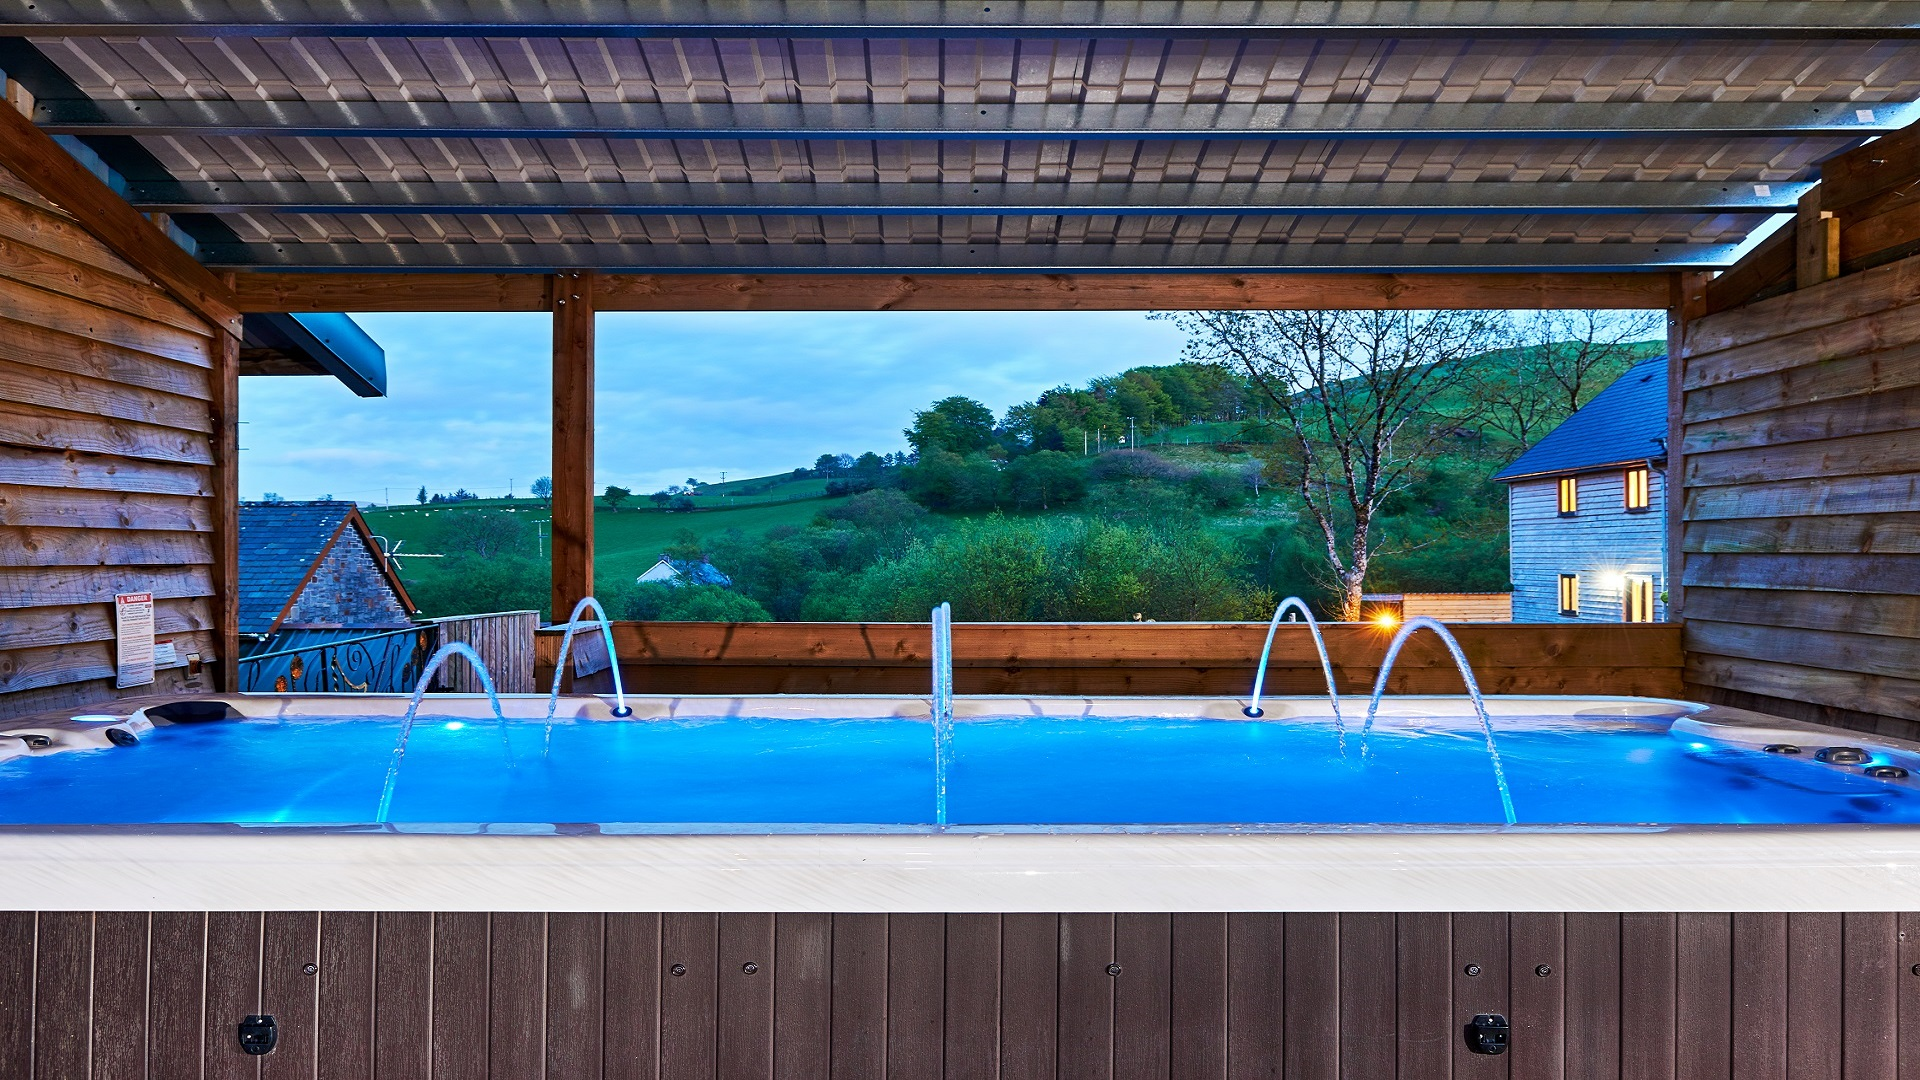 hot tub holidays wales, accommodation mid wales, holiday rentals wales